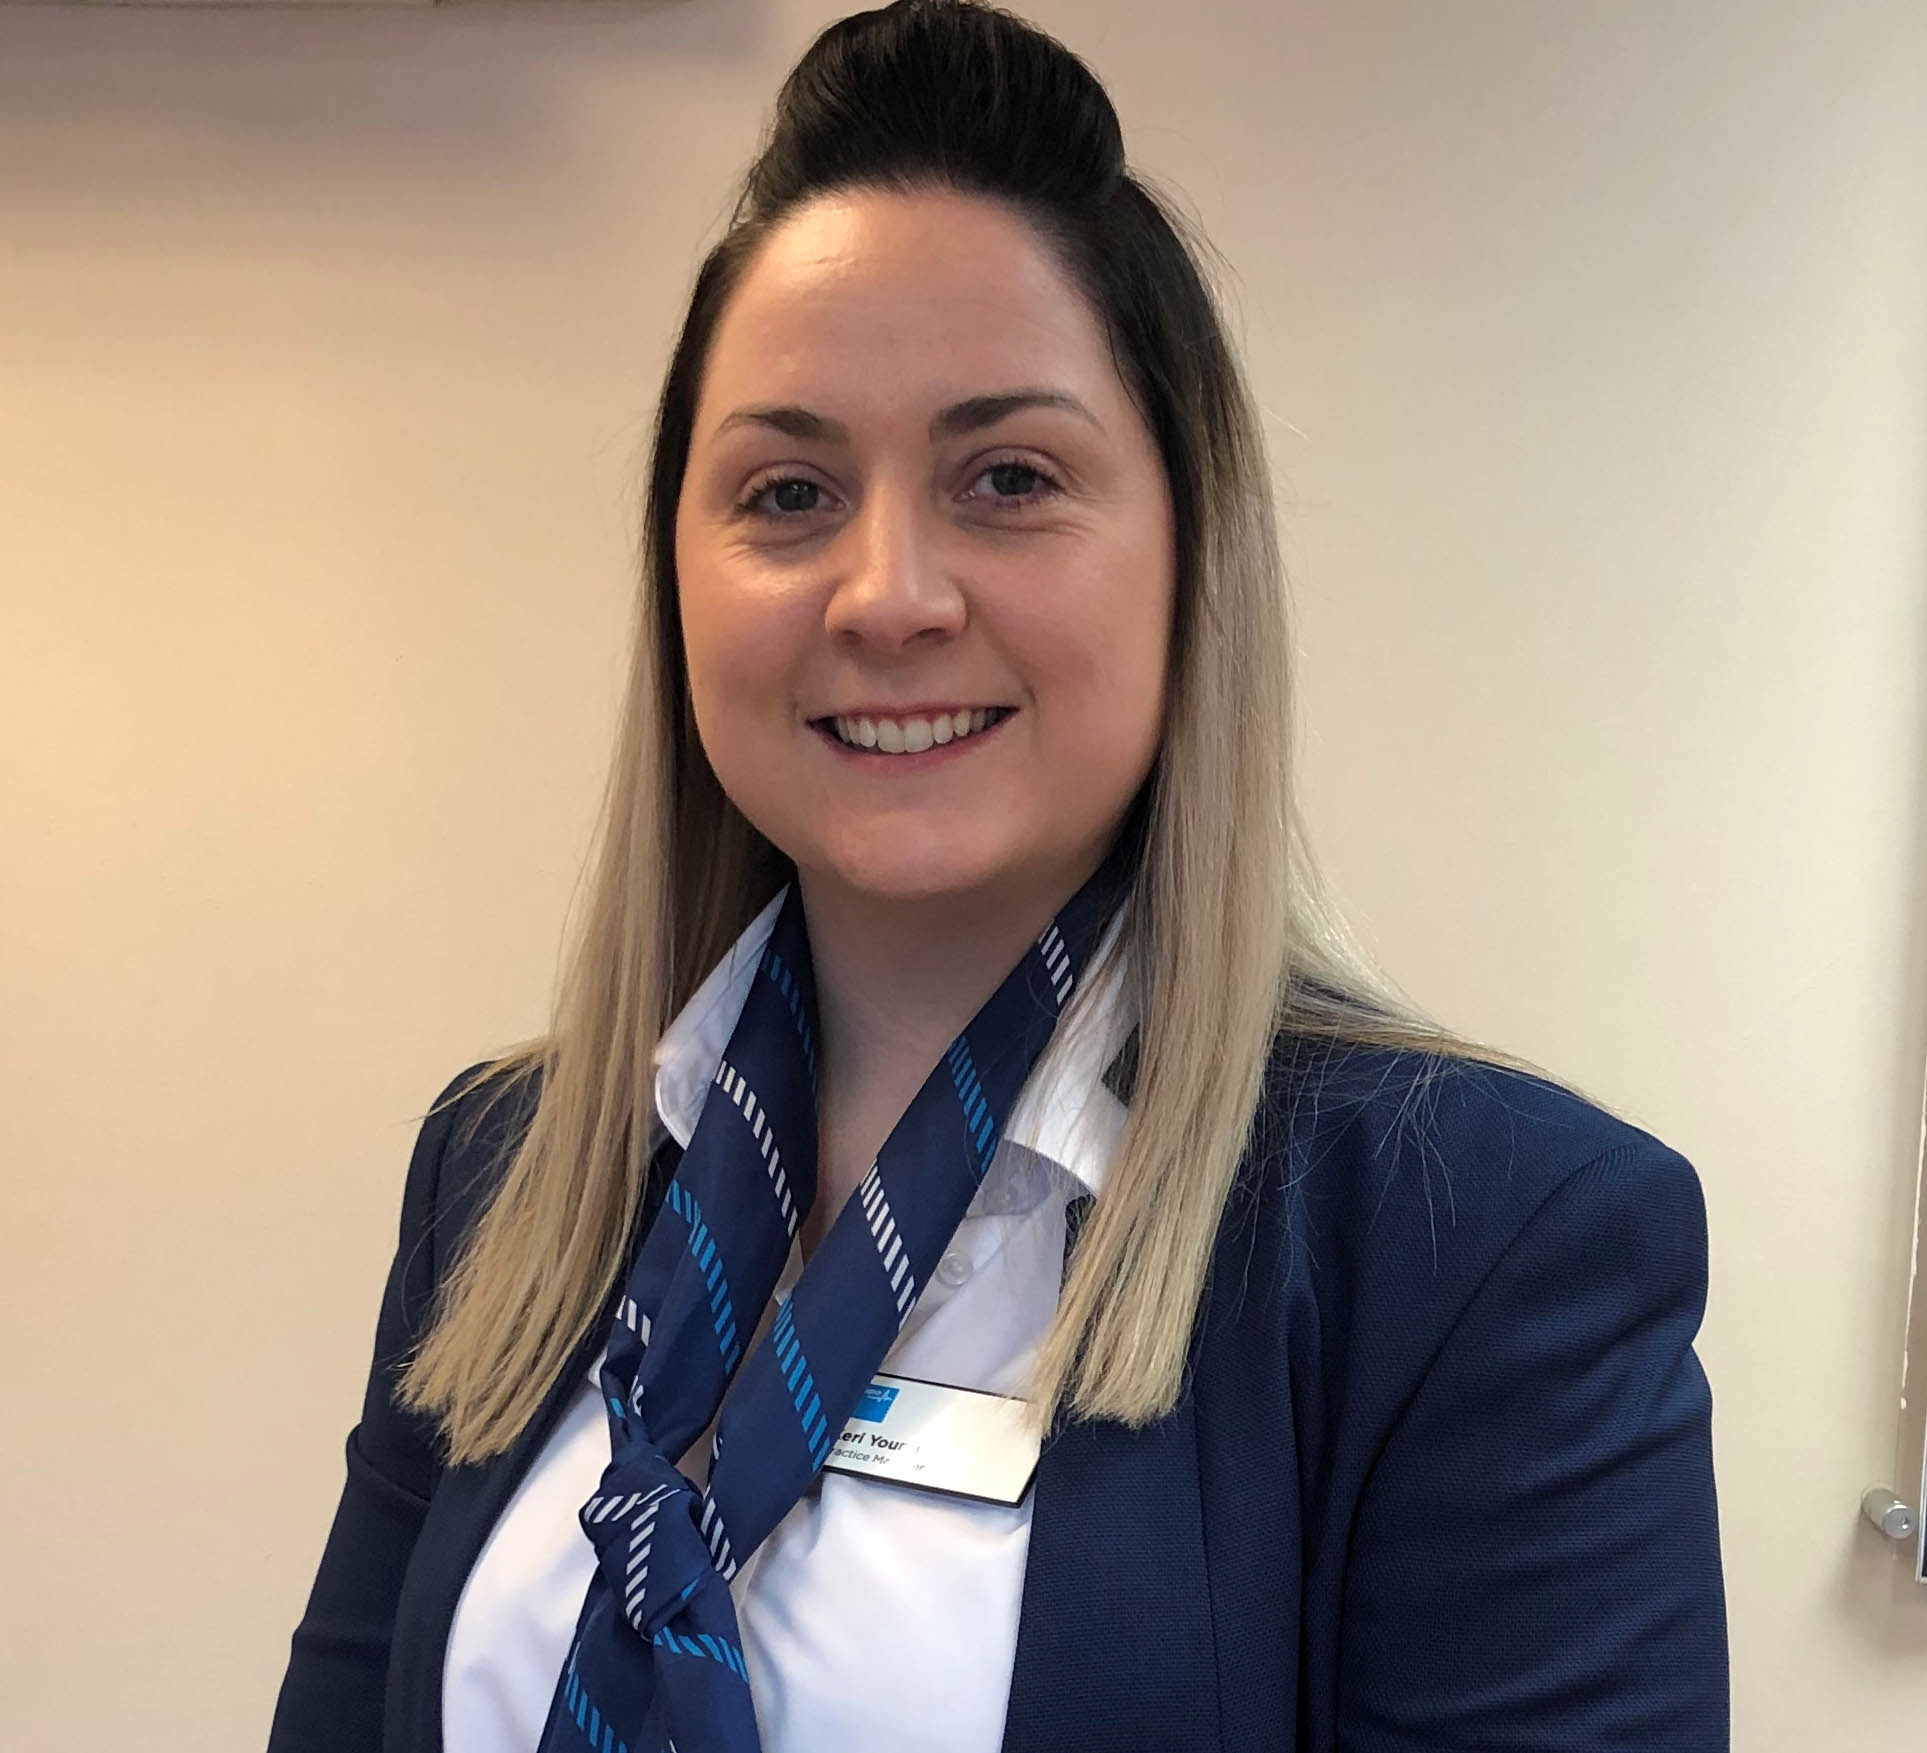 Keri Young, practice manager, whitehaven bupa dental care